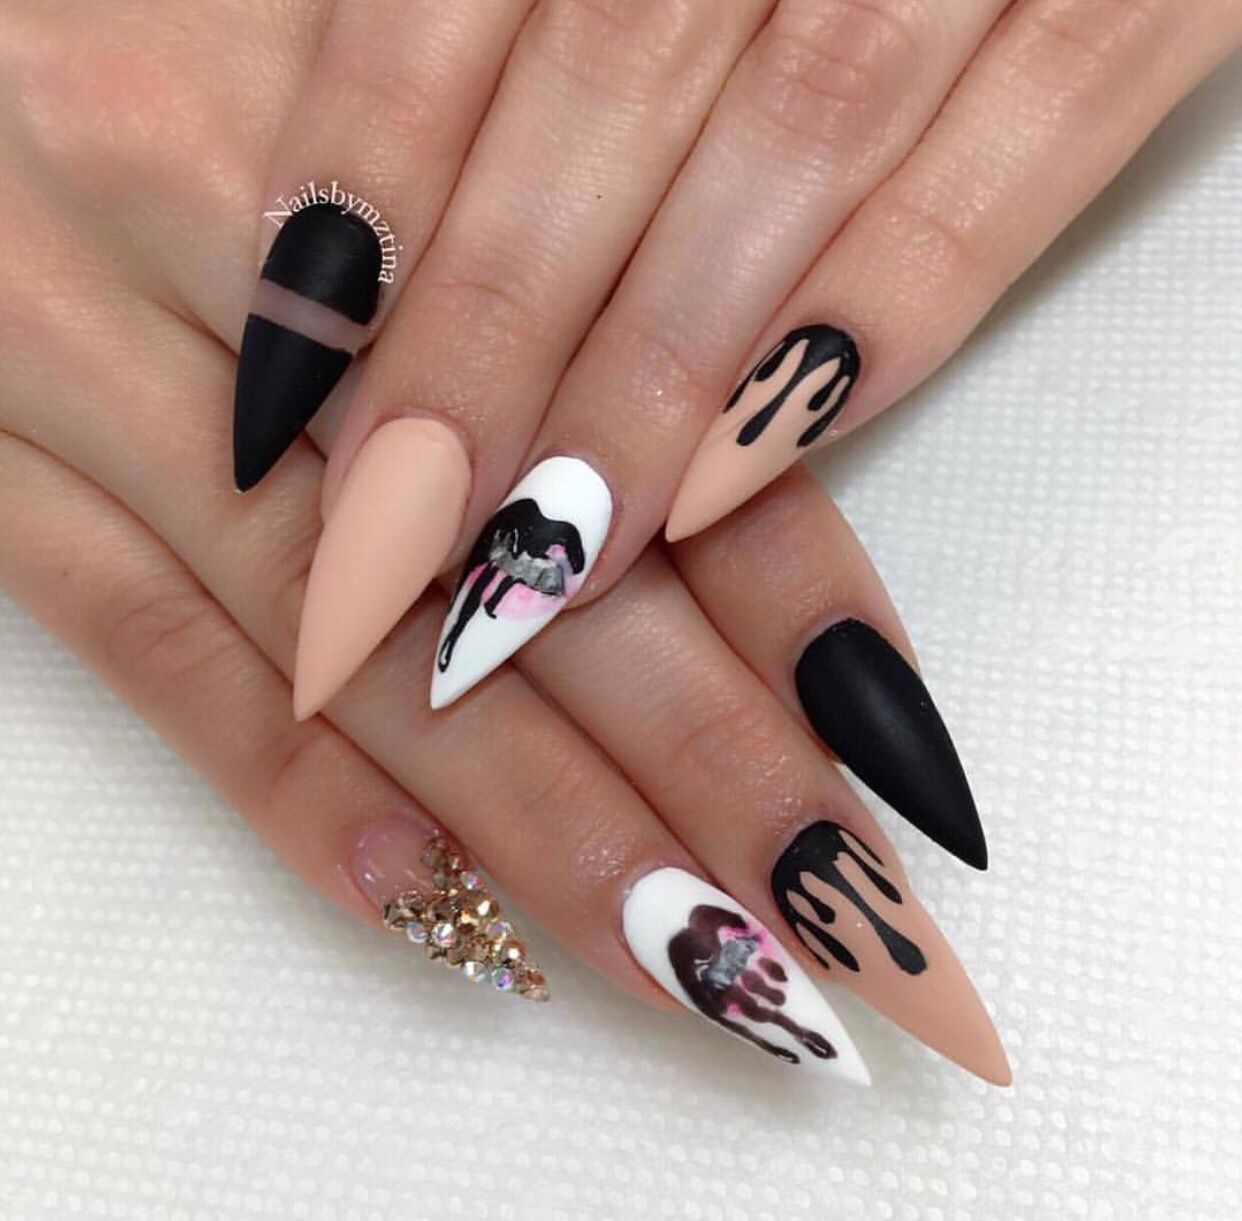 Hand painted Kylie Jenner inspired nails #nailgameonpoint | # Nail ...